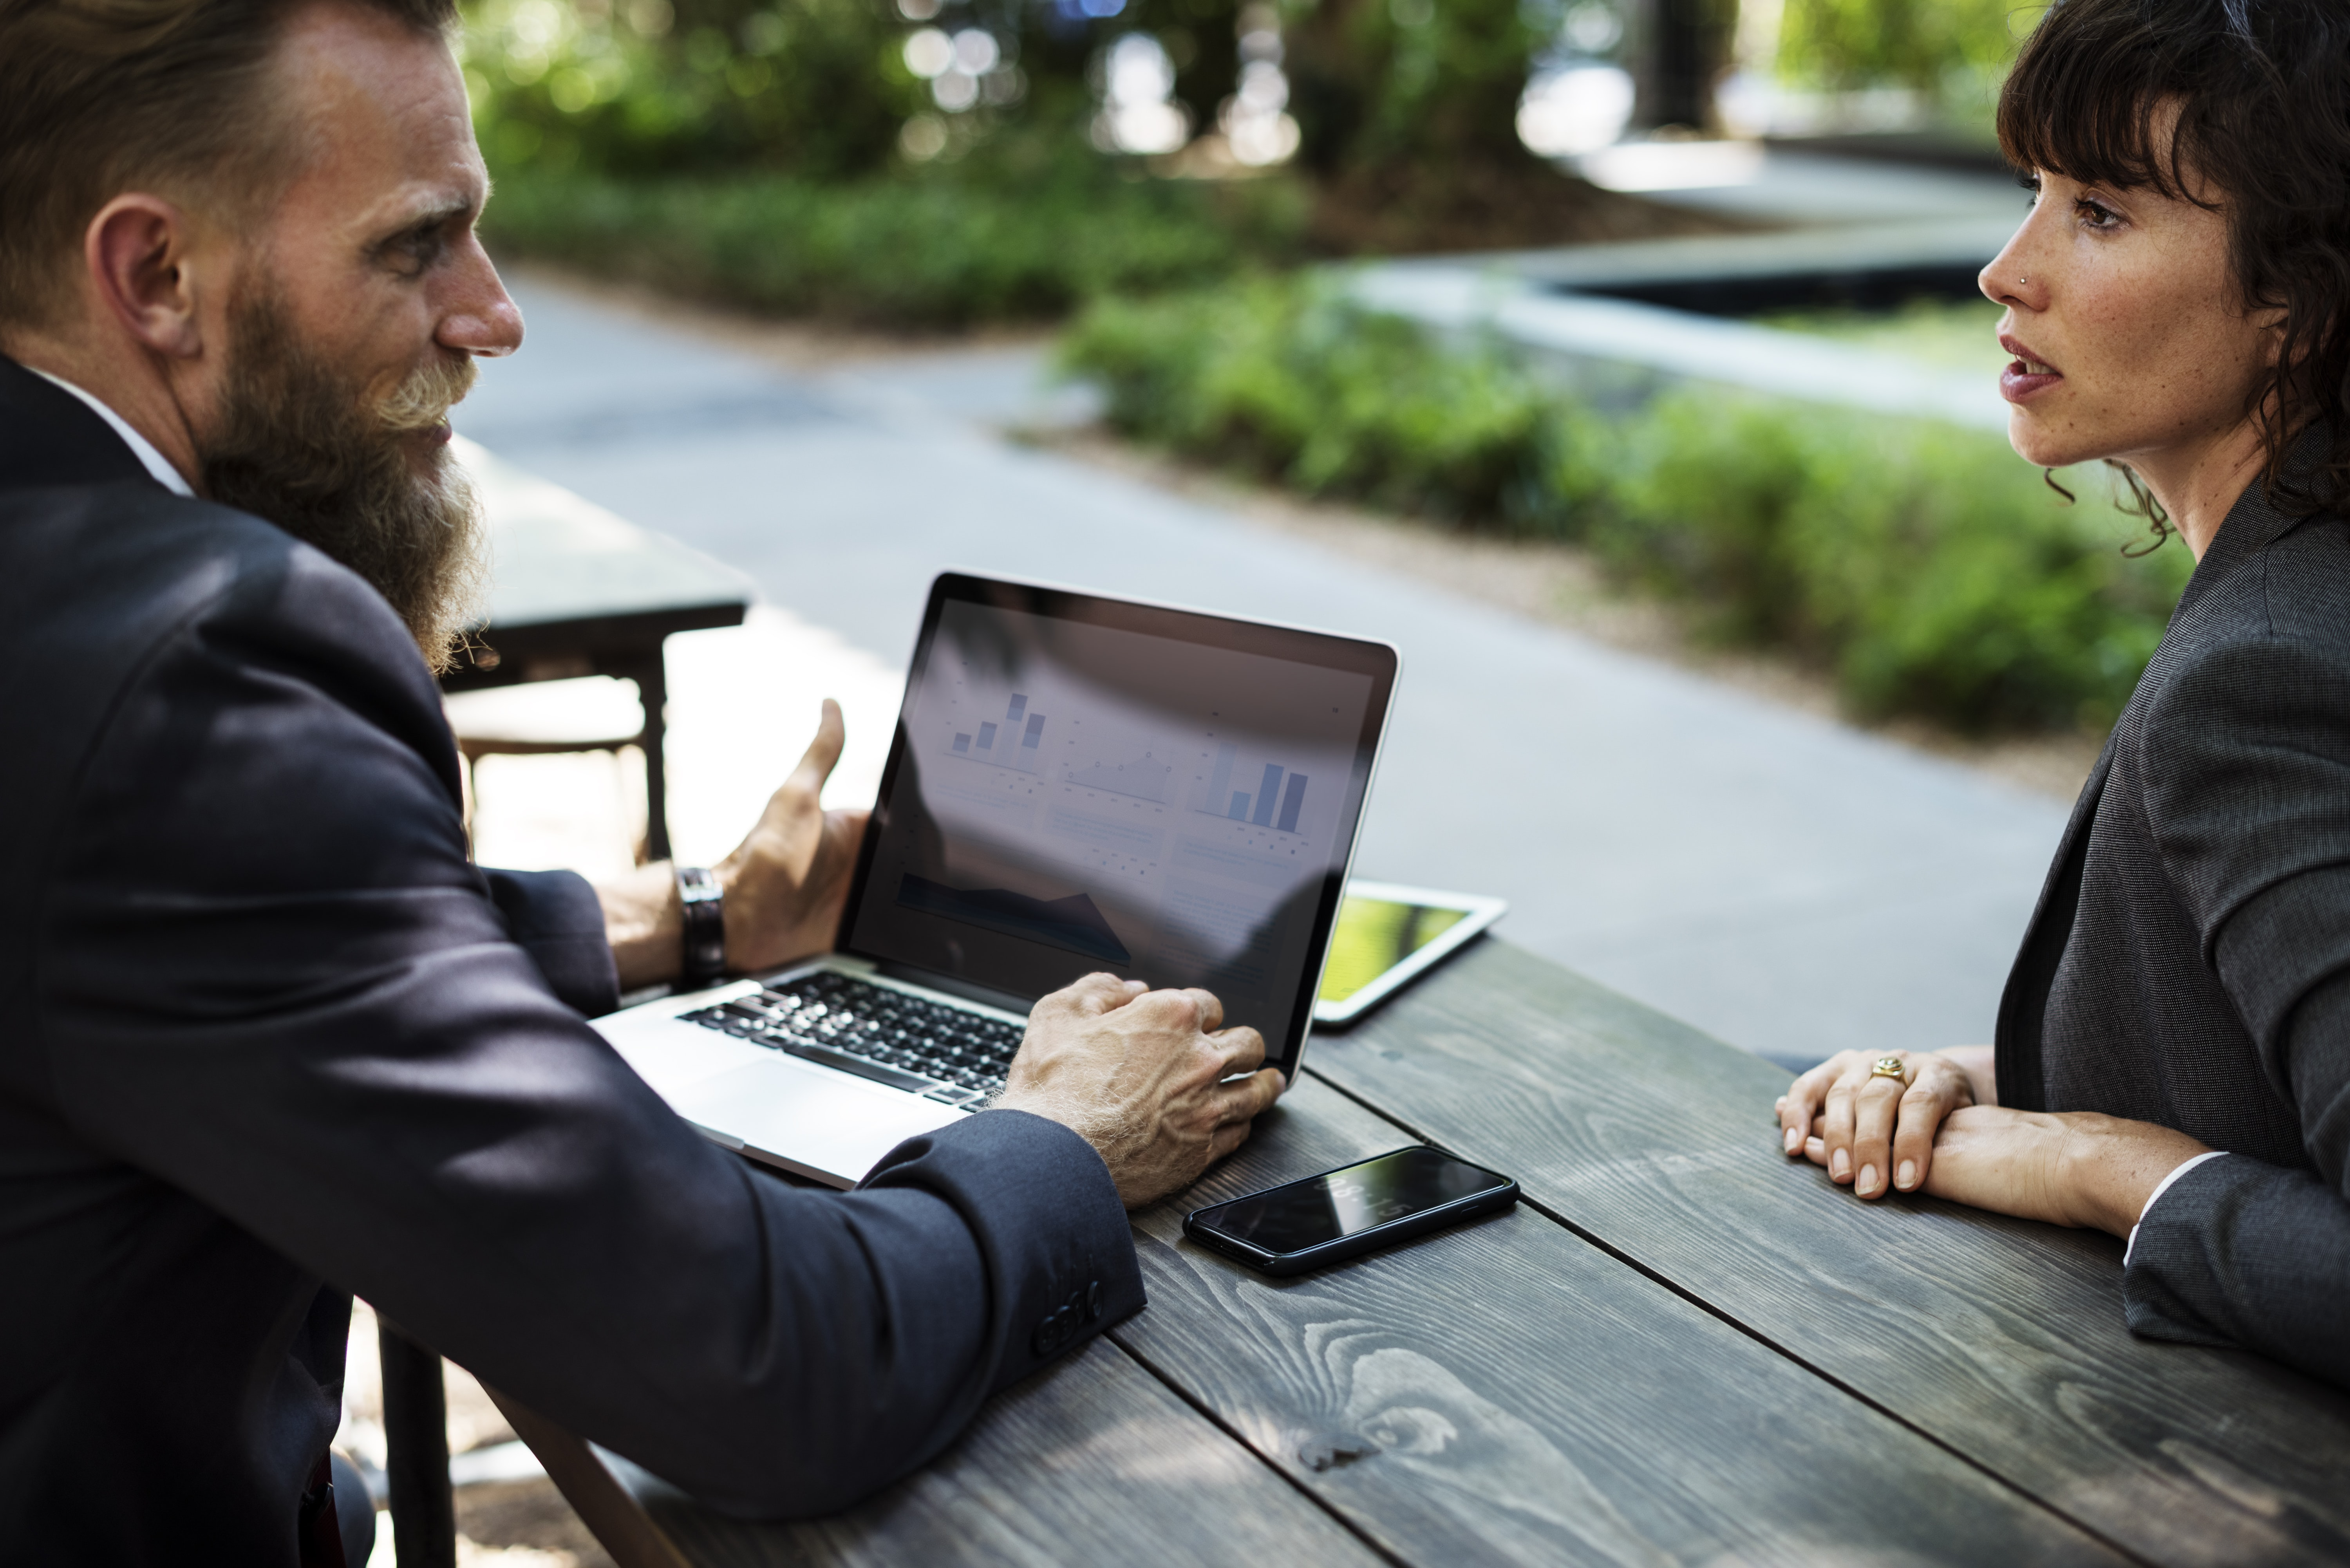 man facing woman with laptop on table